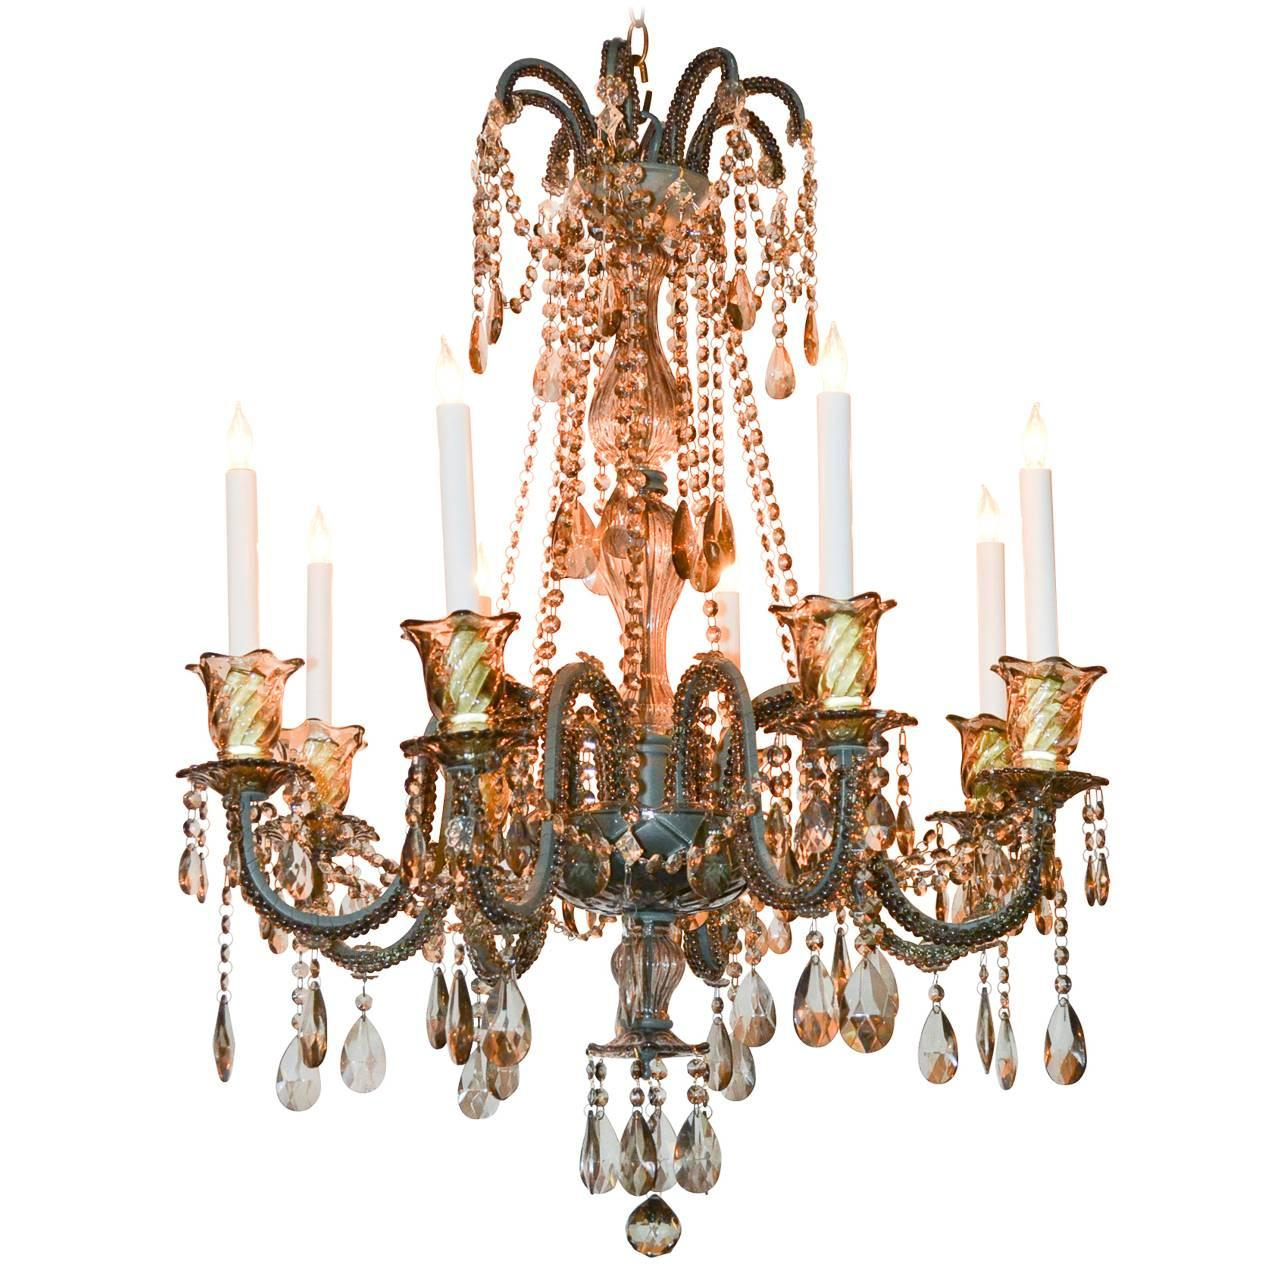 Crystal Chandelier With Large Black Shade & Crystal Balls H24 x W15